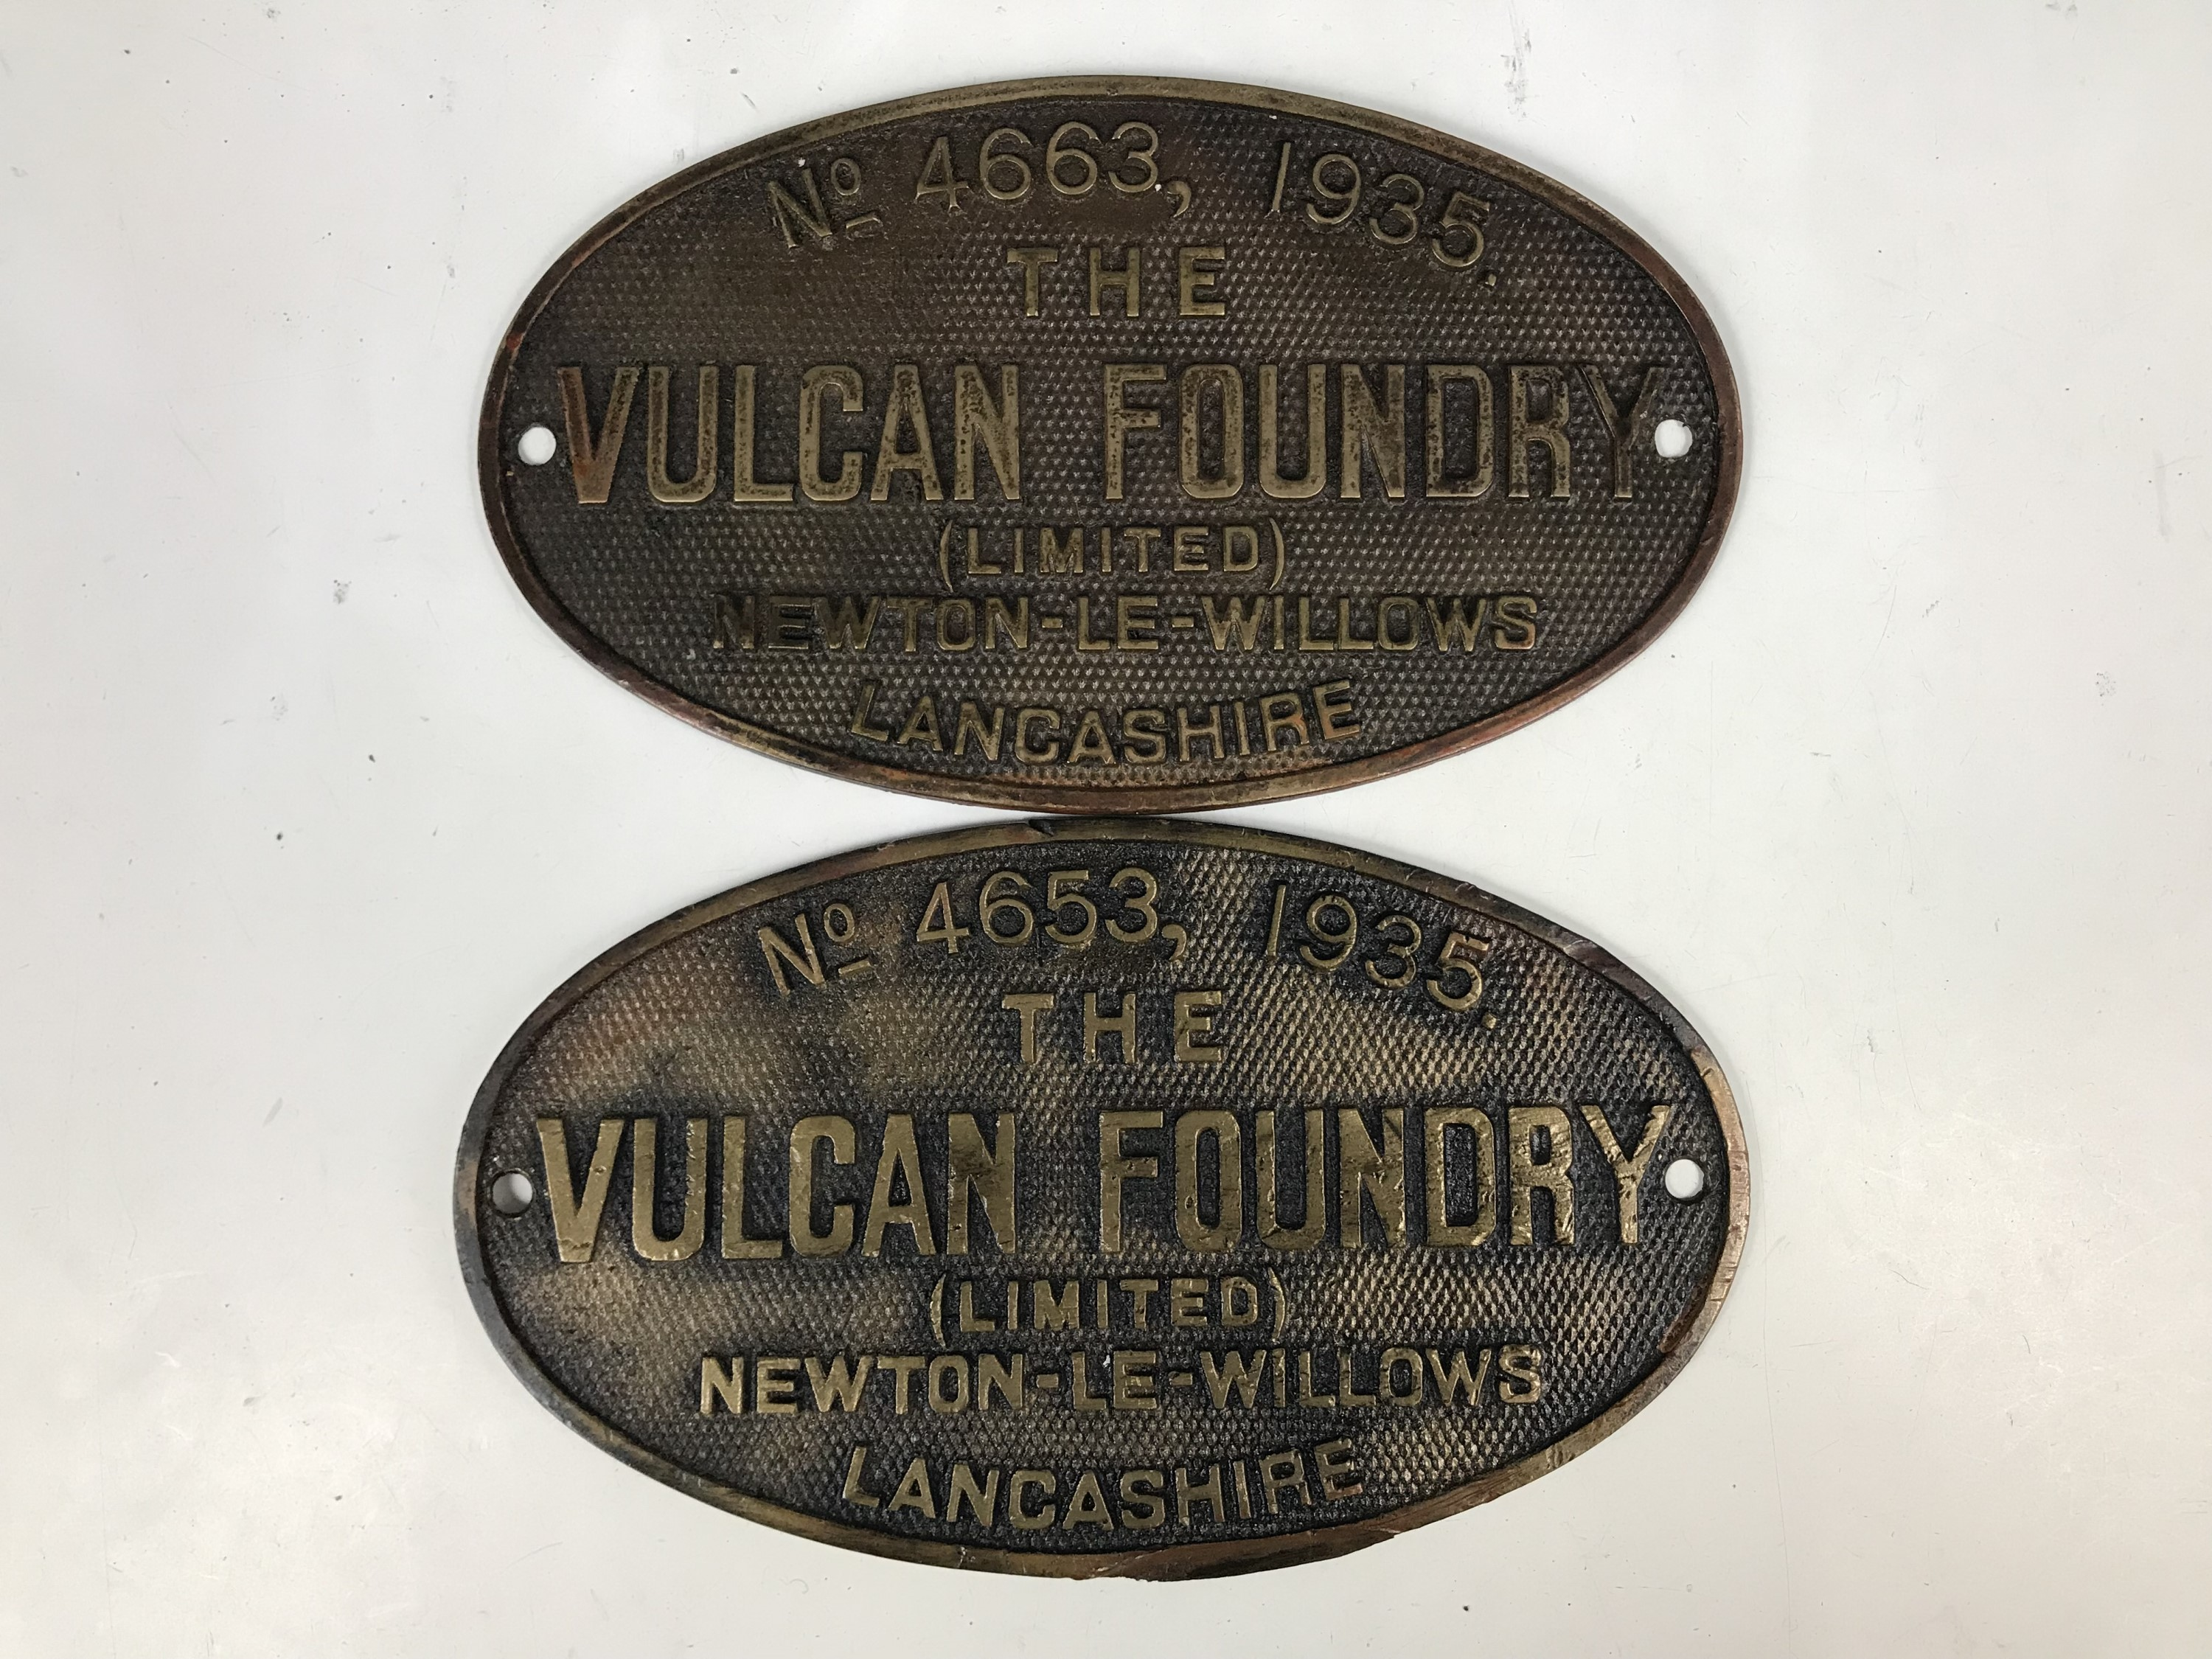 Lot 37 - Sundry railway locomotive builder / shed plates by the Vulcan Foundry including No. 4653, 1935,